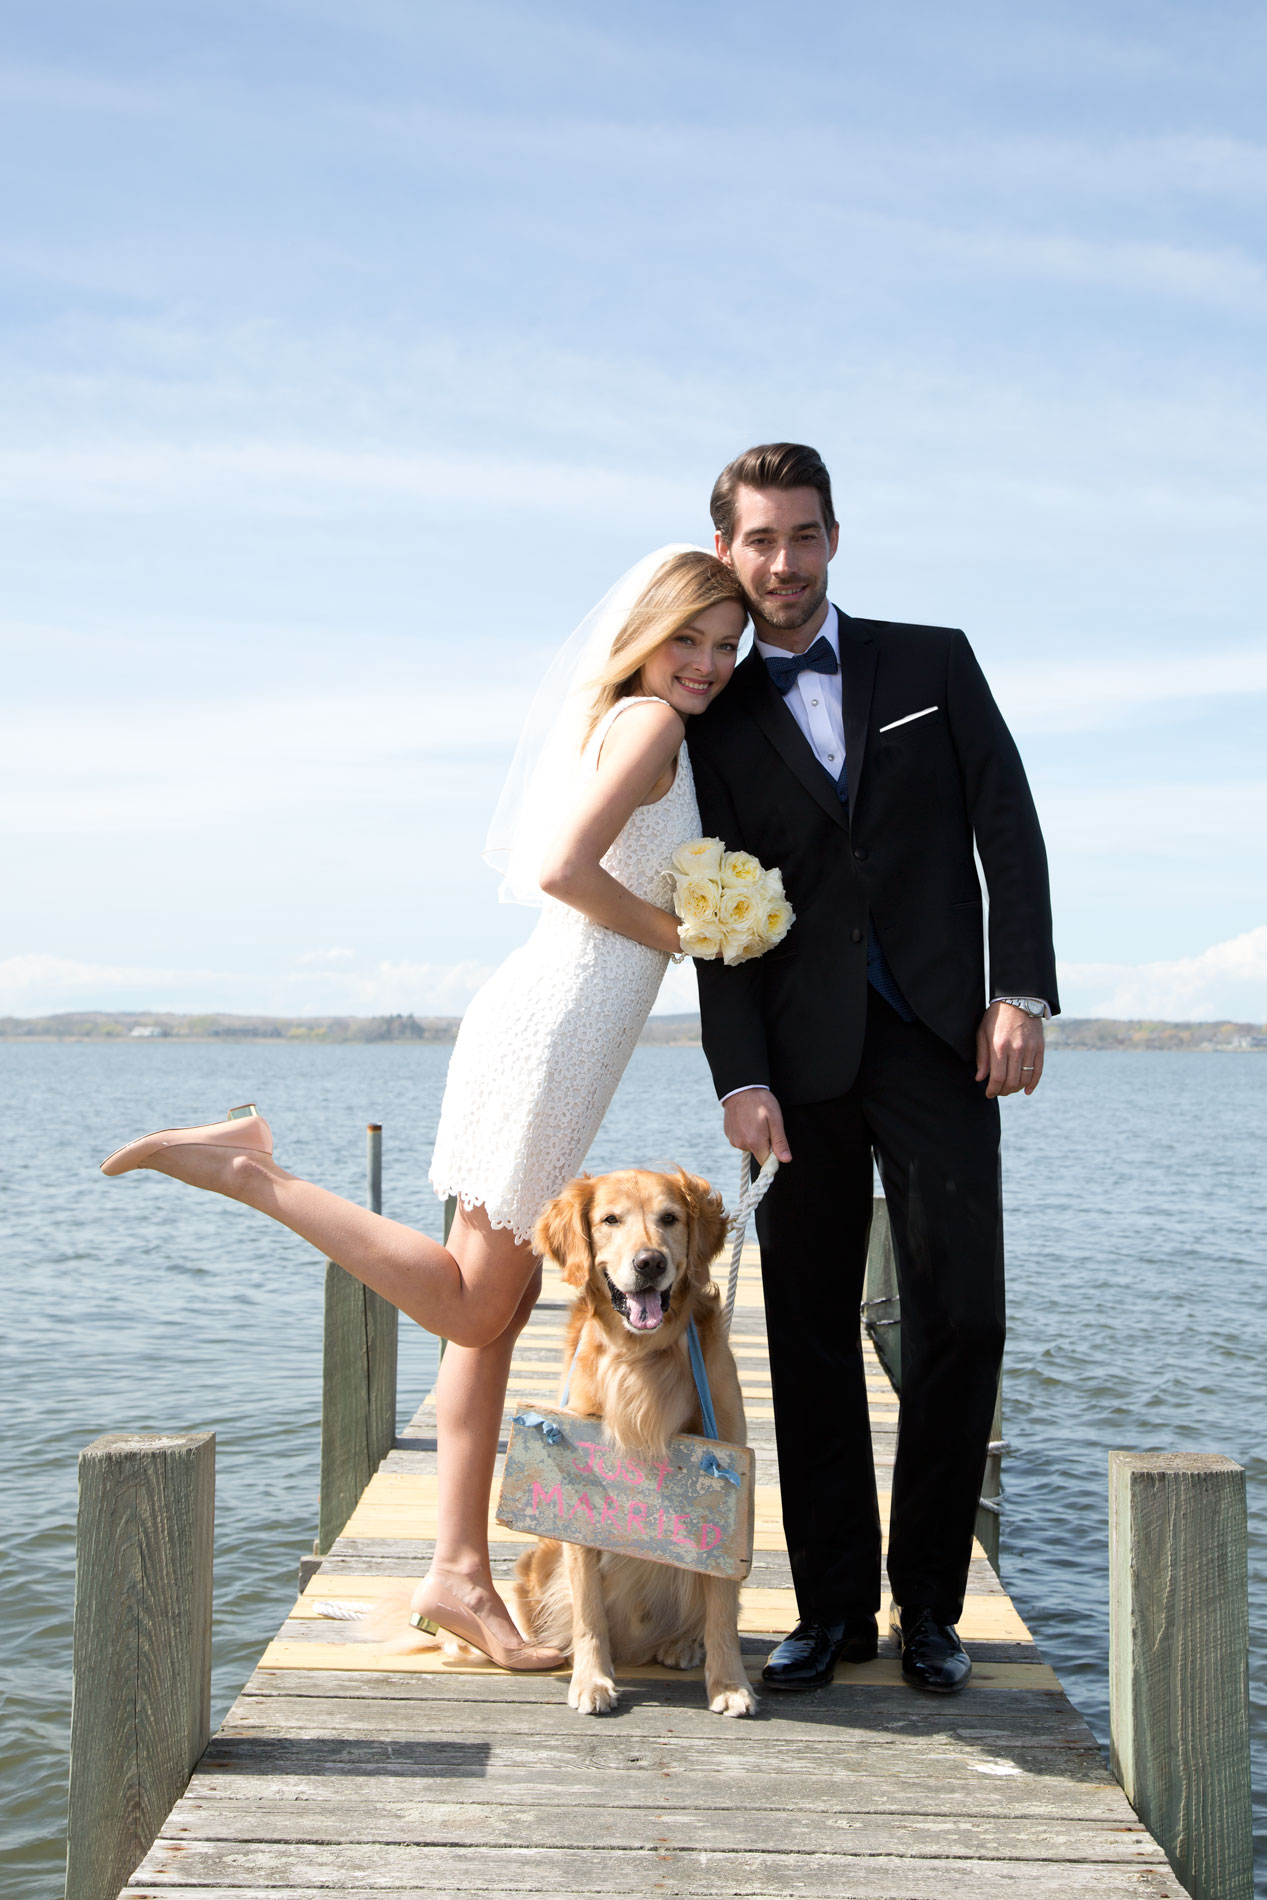 Extended Rentals Cruises Trips Beach Weddings